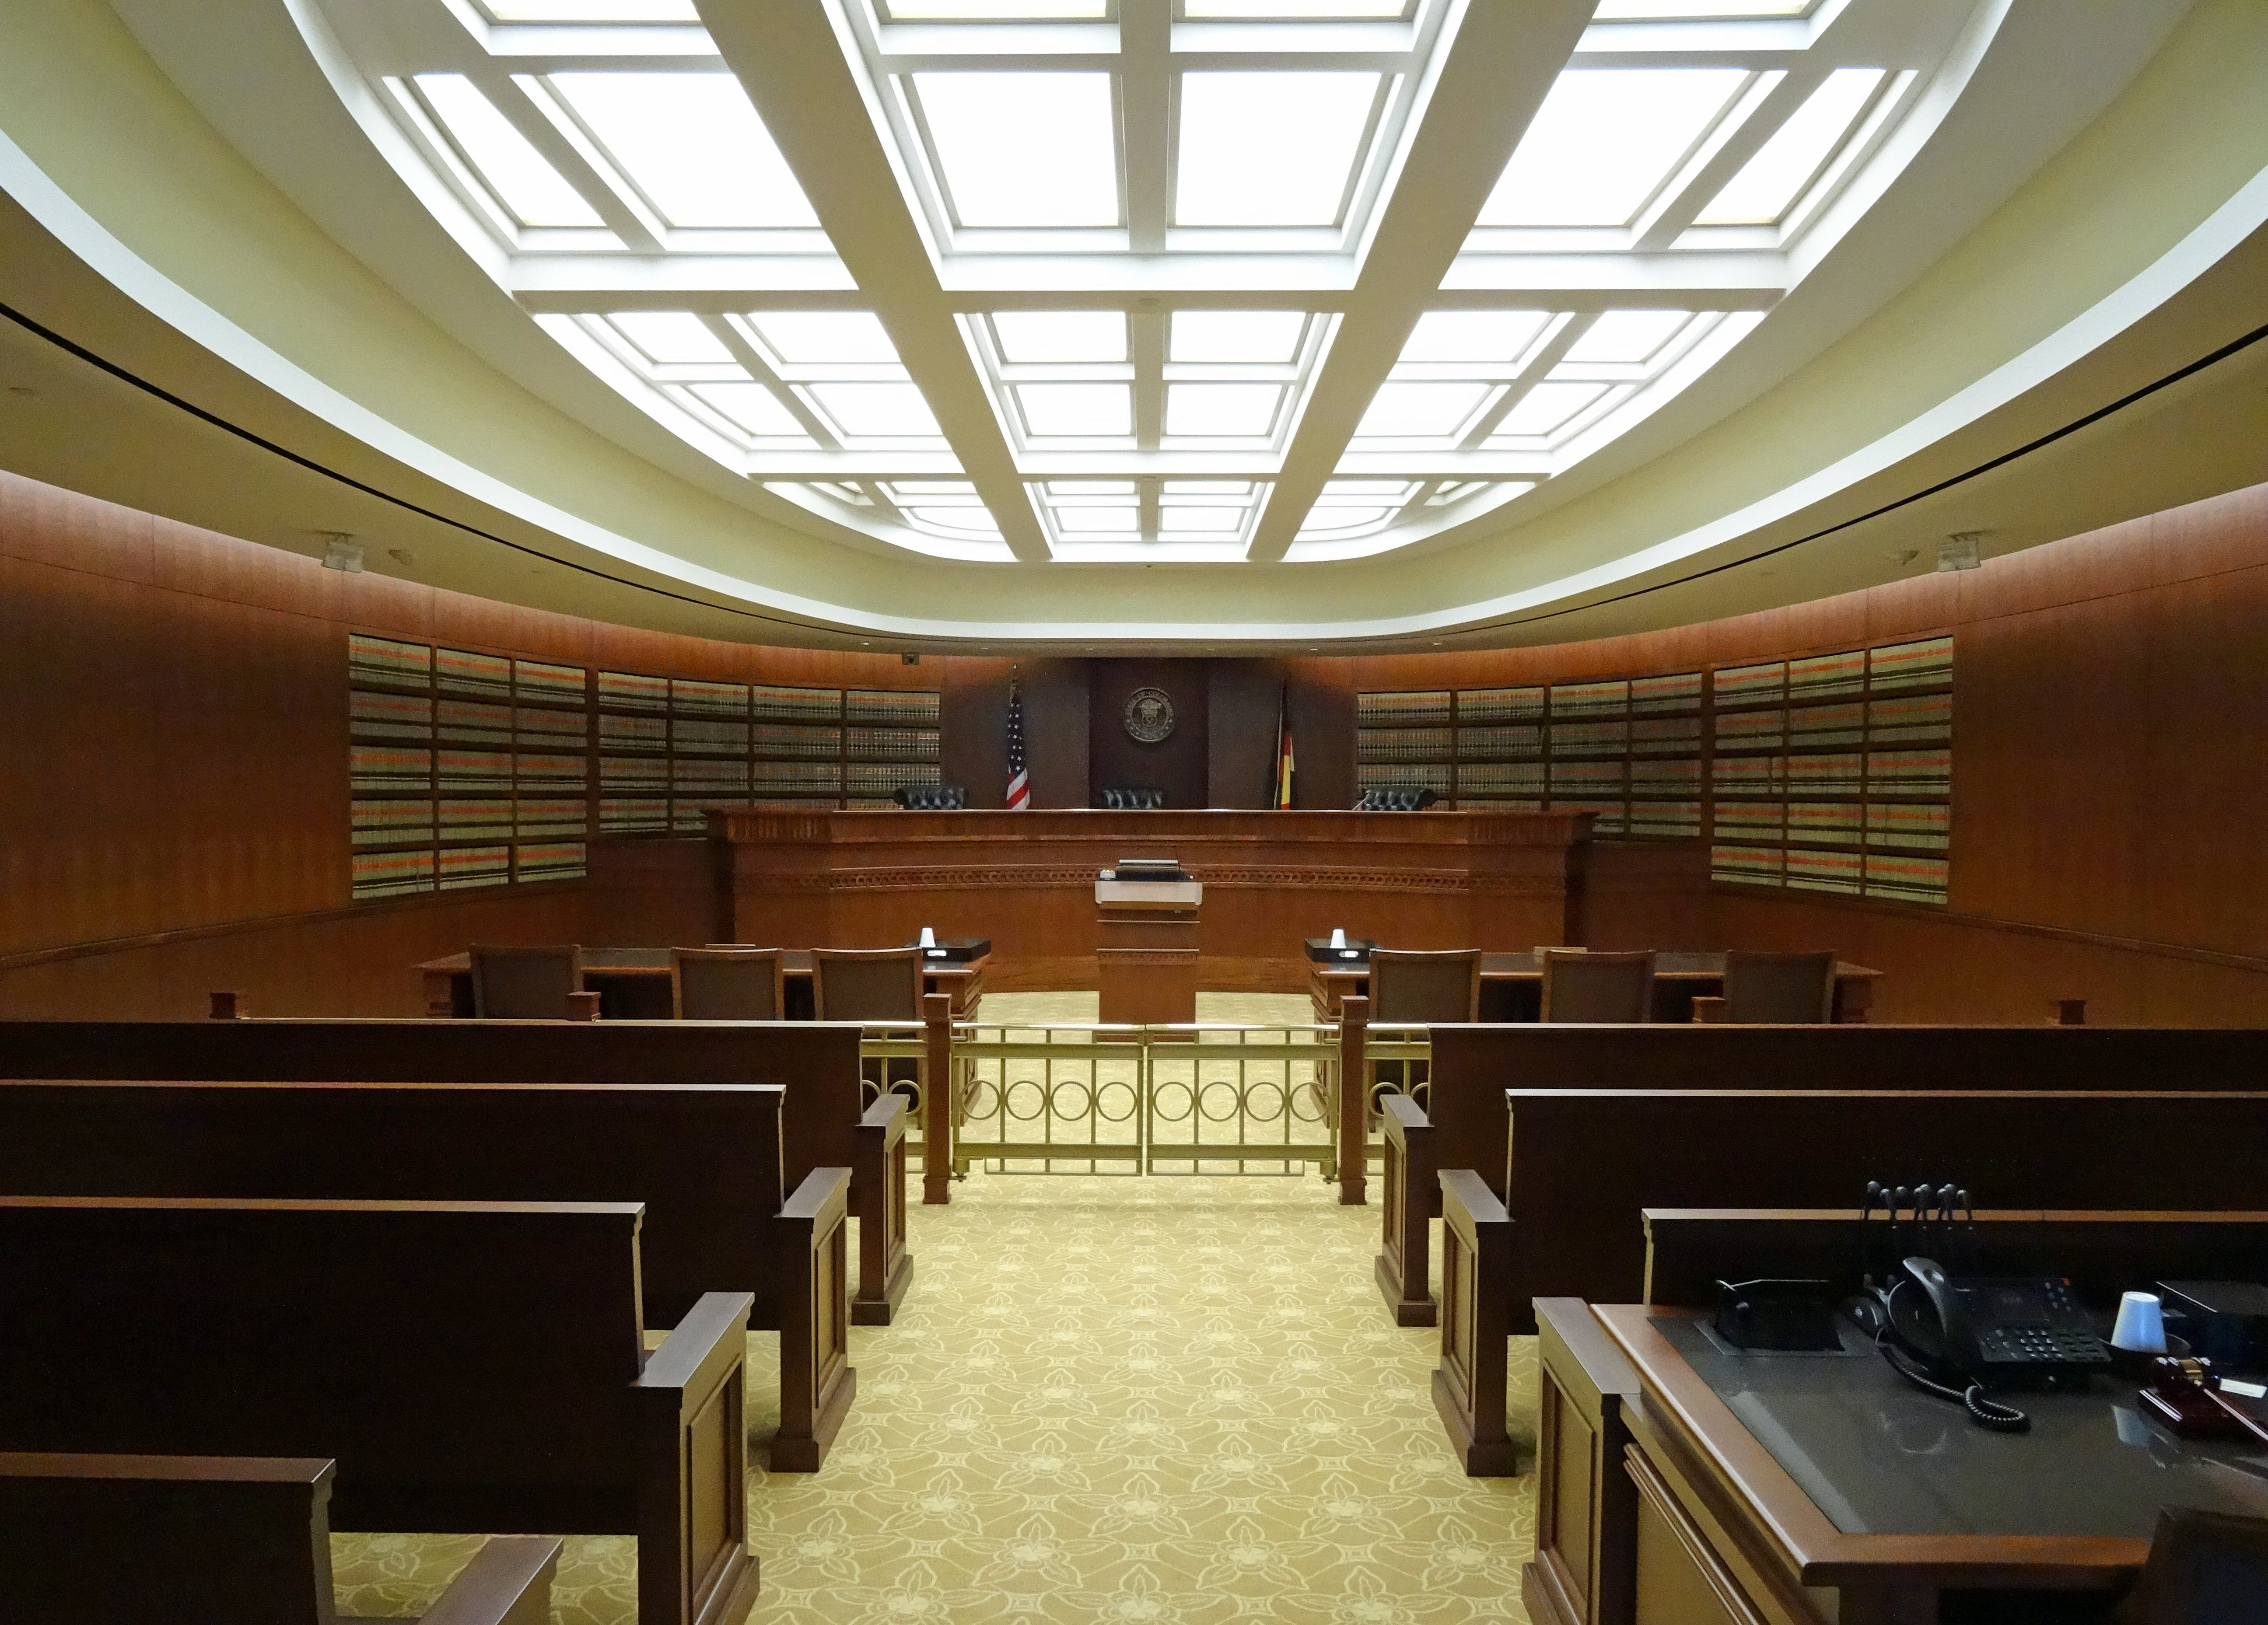 Colorado Court of Appeals - Wikipedia